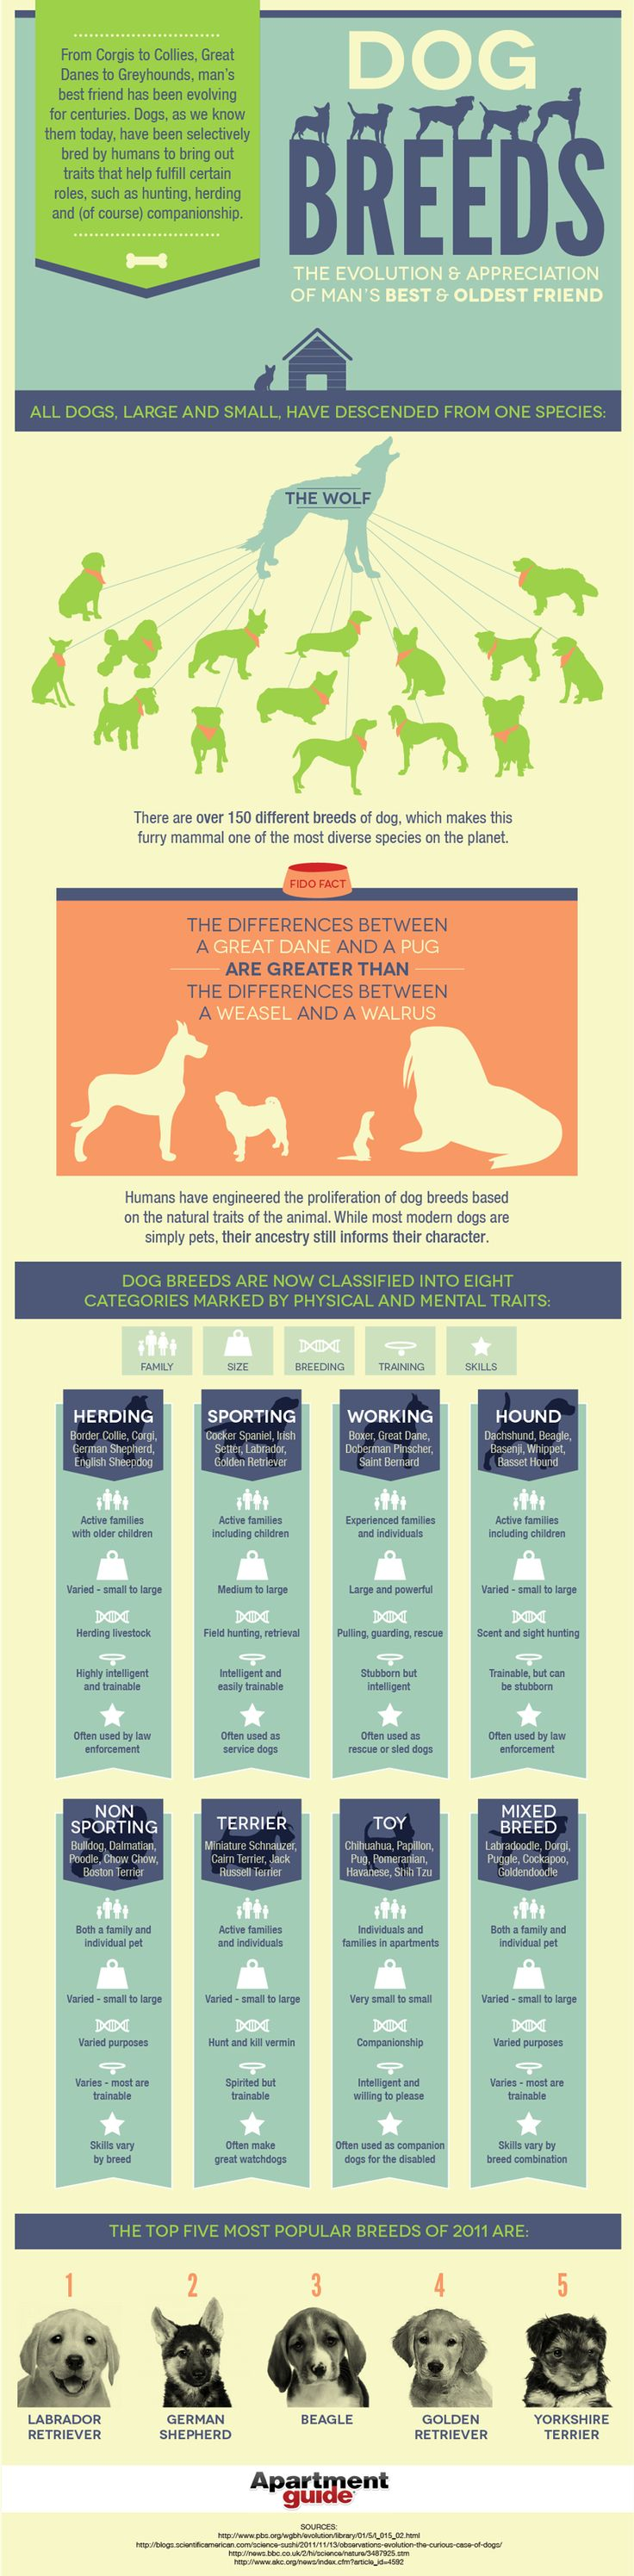 Do Pit Bulls Need Different Training Than Other Dogs